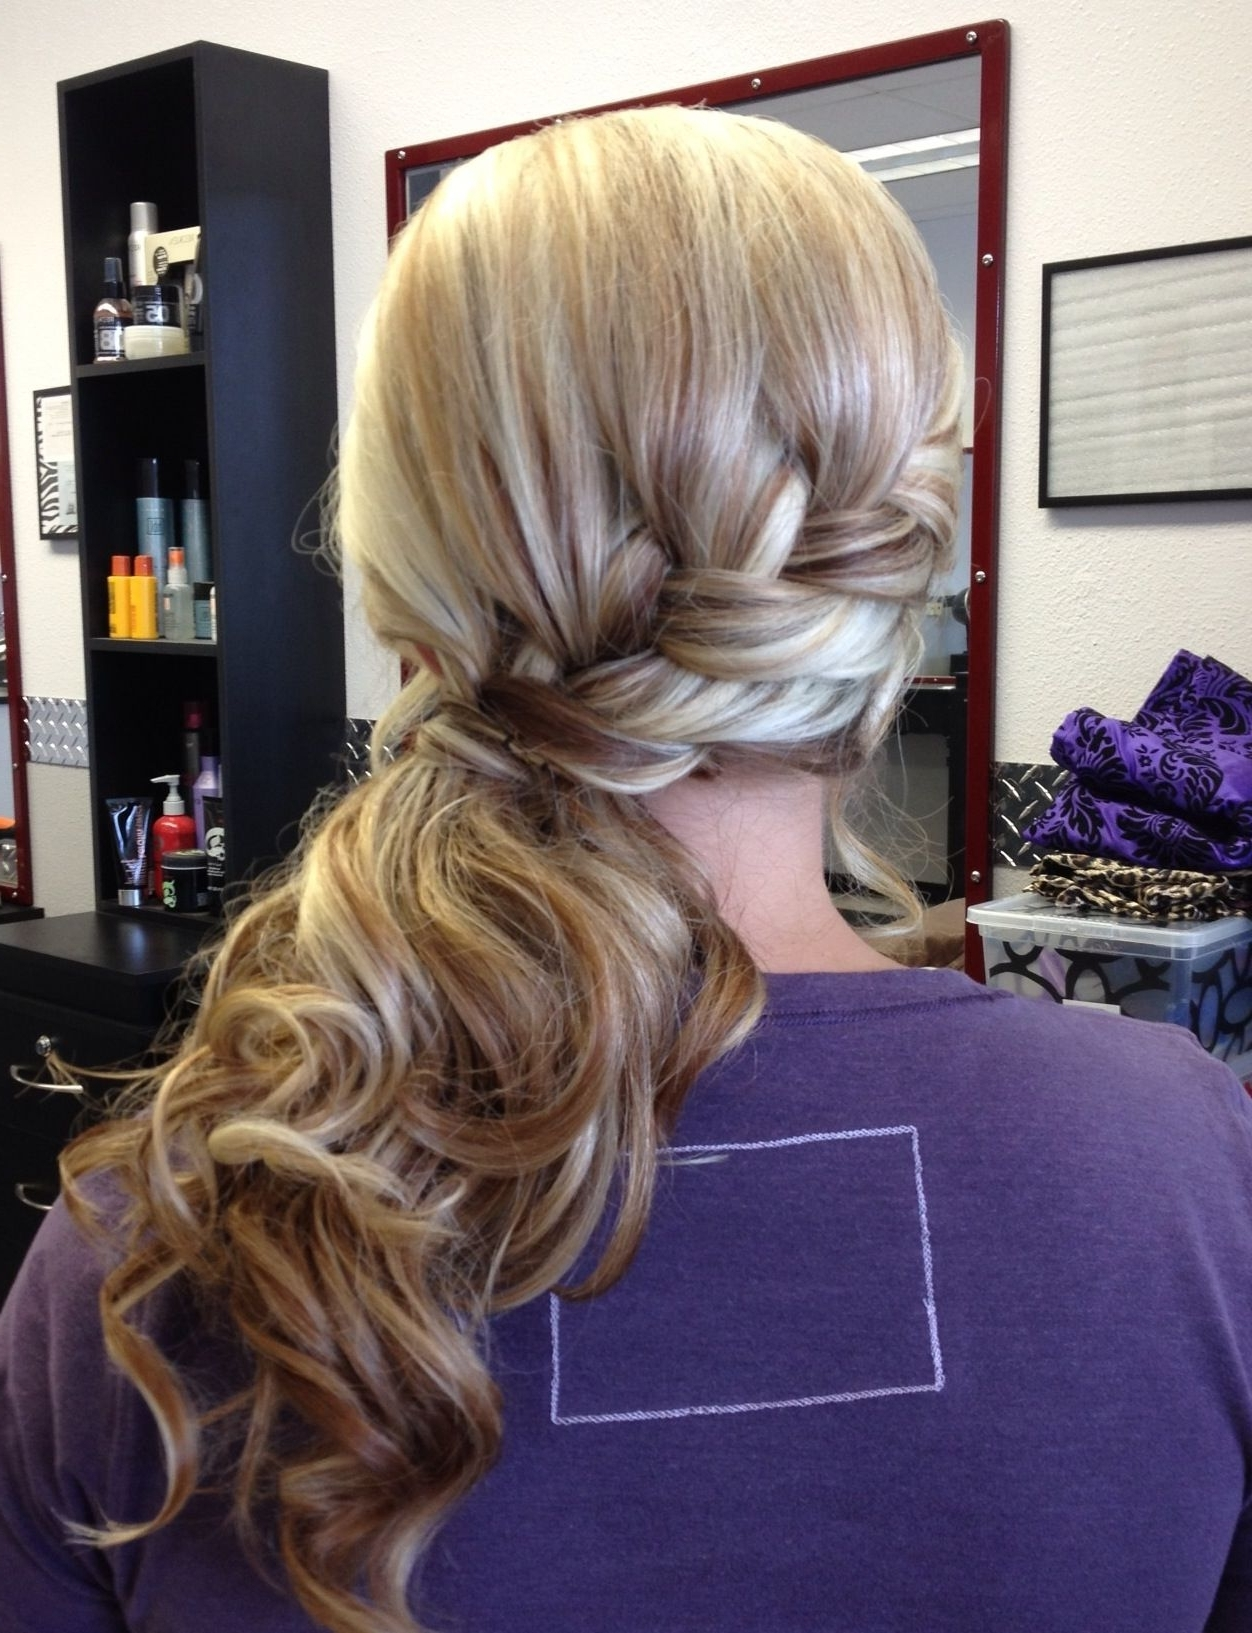 This Is The First Braided Style Ive Liked At All (View 8 of 20)